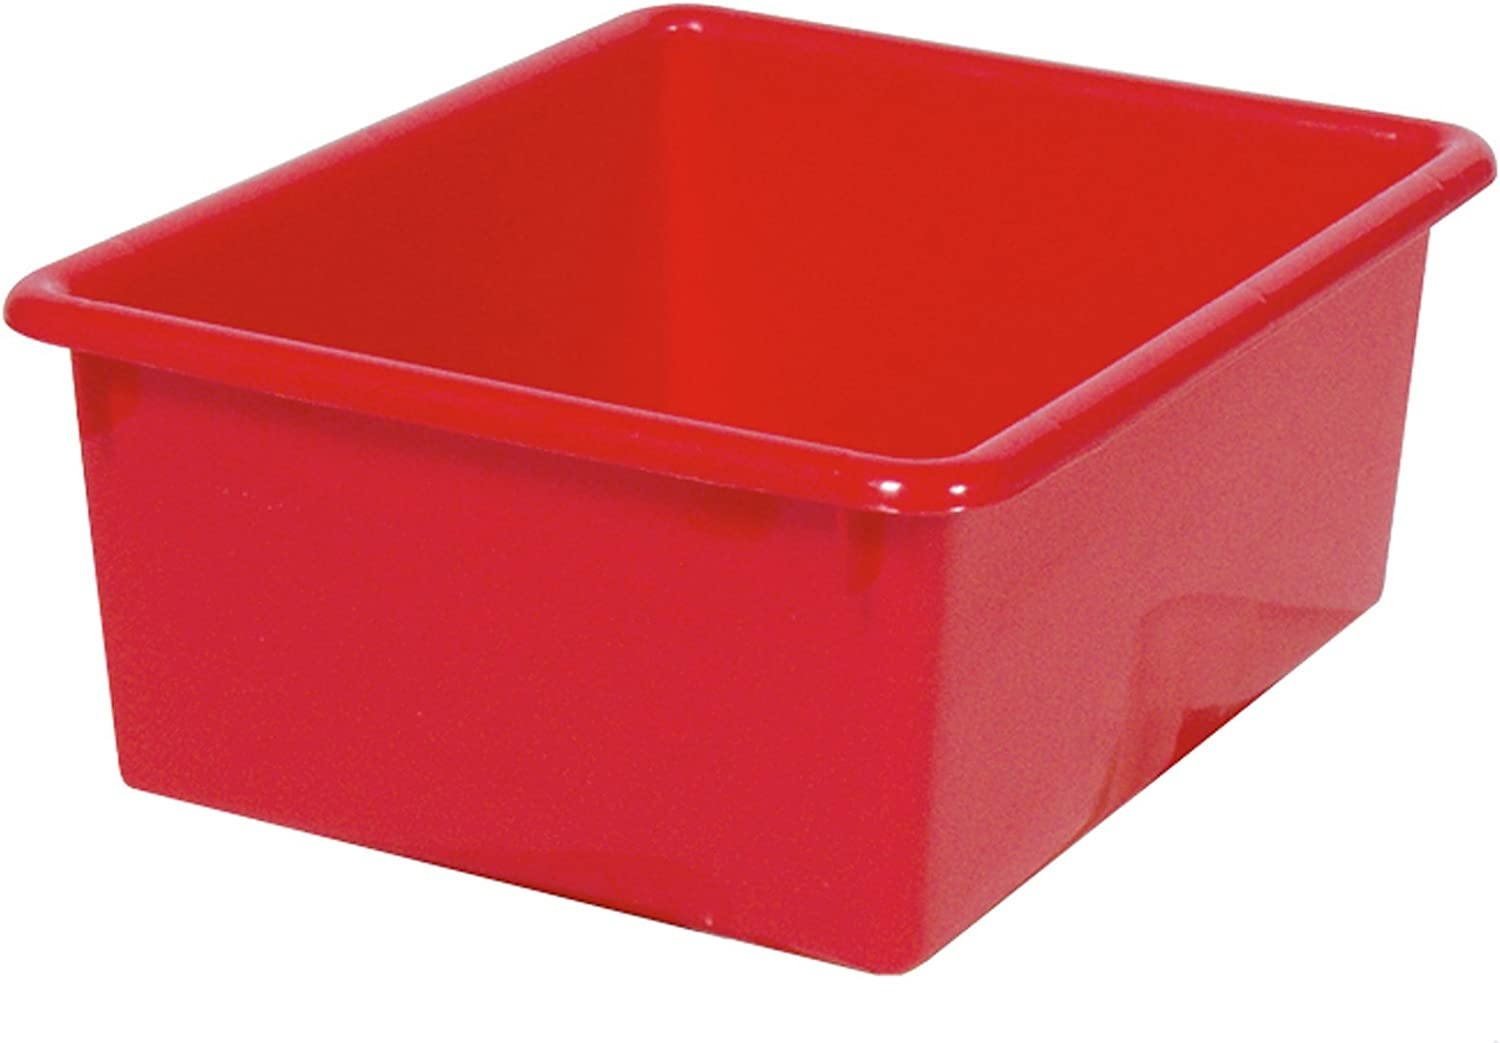 Steffy Wood Products Red Storage Tub, 5-Inch by 10-1 2-Inch by 13-Inch